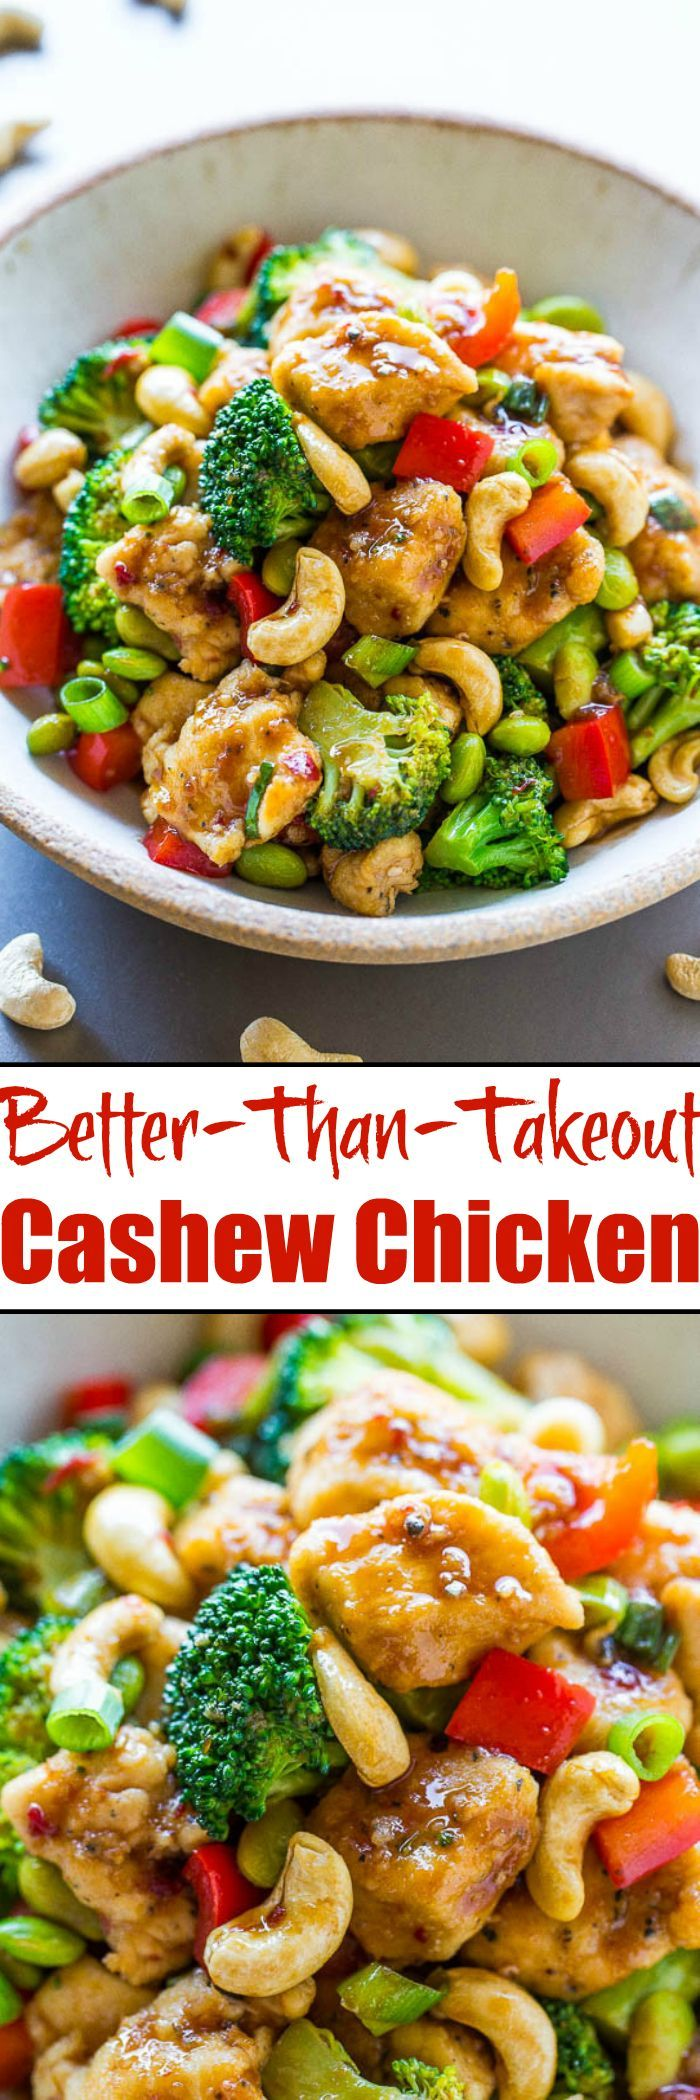 Better-Than-Takeout Cashew Chicken - Juicy chicken, crisp-tender vegetables, and crunchy cashews coated with the best garlicky soy sauce!! Skip takeout and make your own restaurant-quality meal that's easy, ready in 20 minutes, and healthier!! #MemorialDay parties!